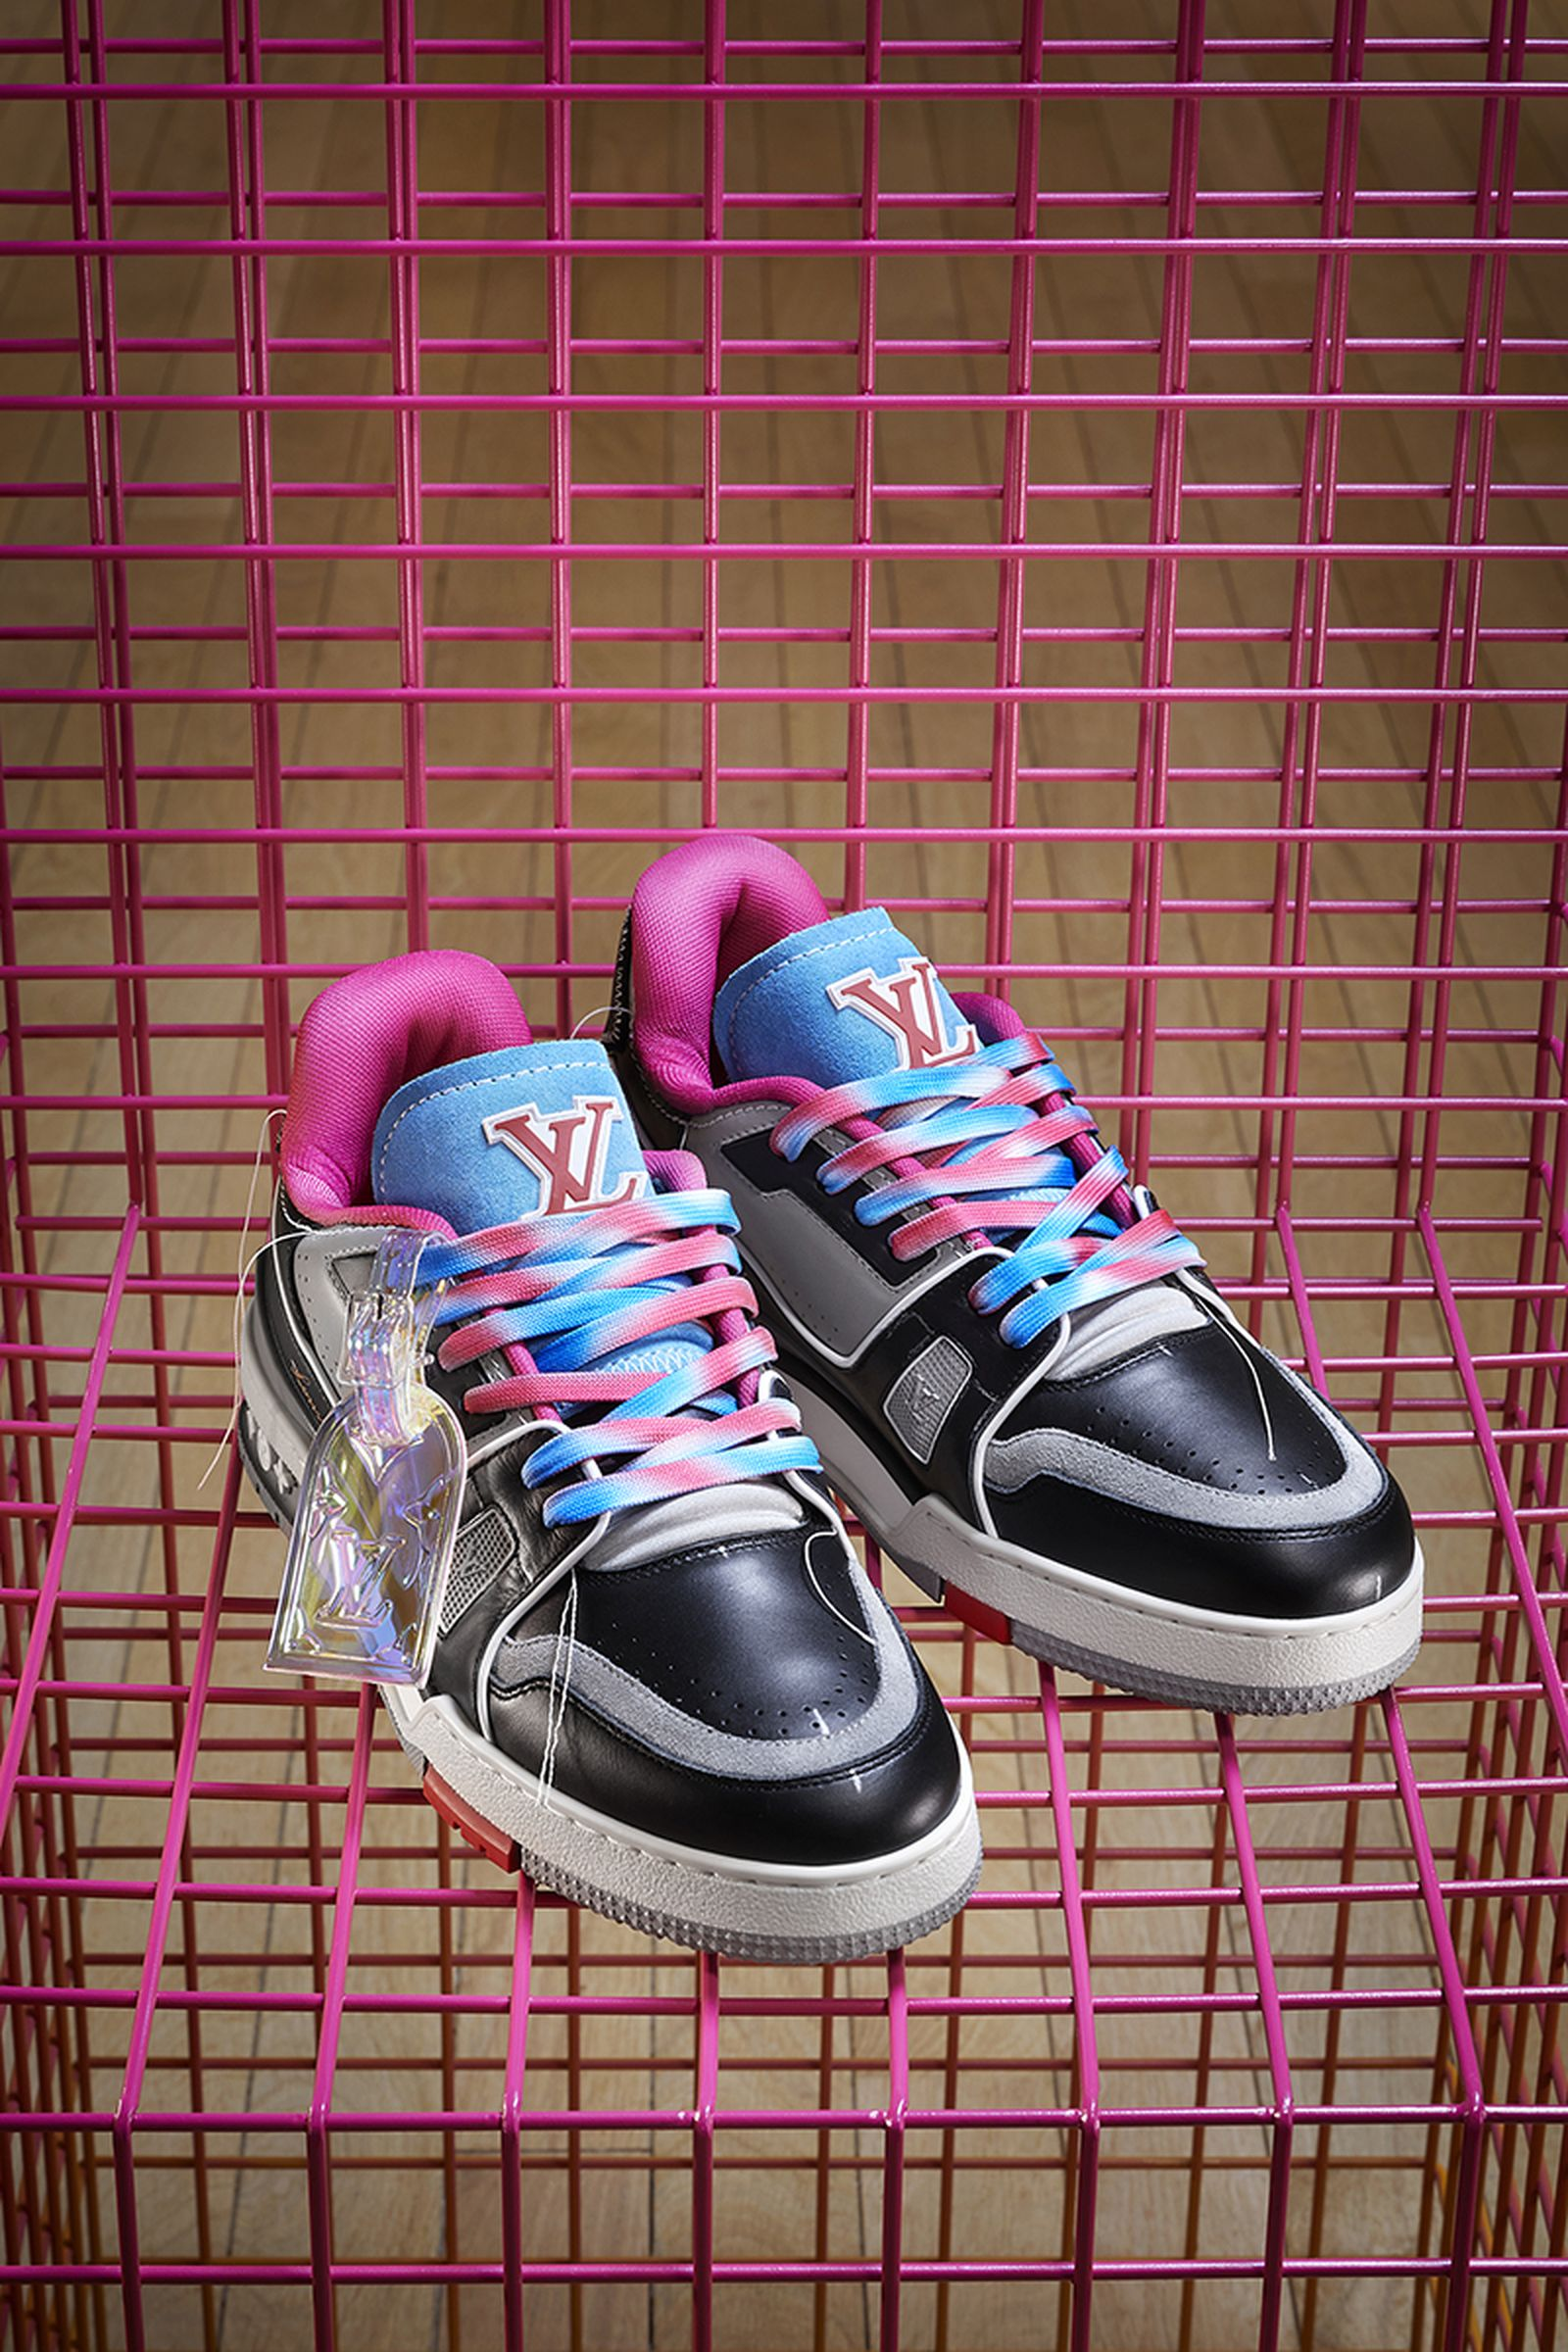 louis-vuitton-lv-trainer-upcycling-collection-release-info-03